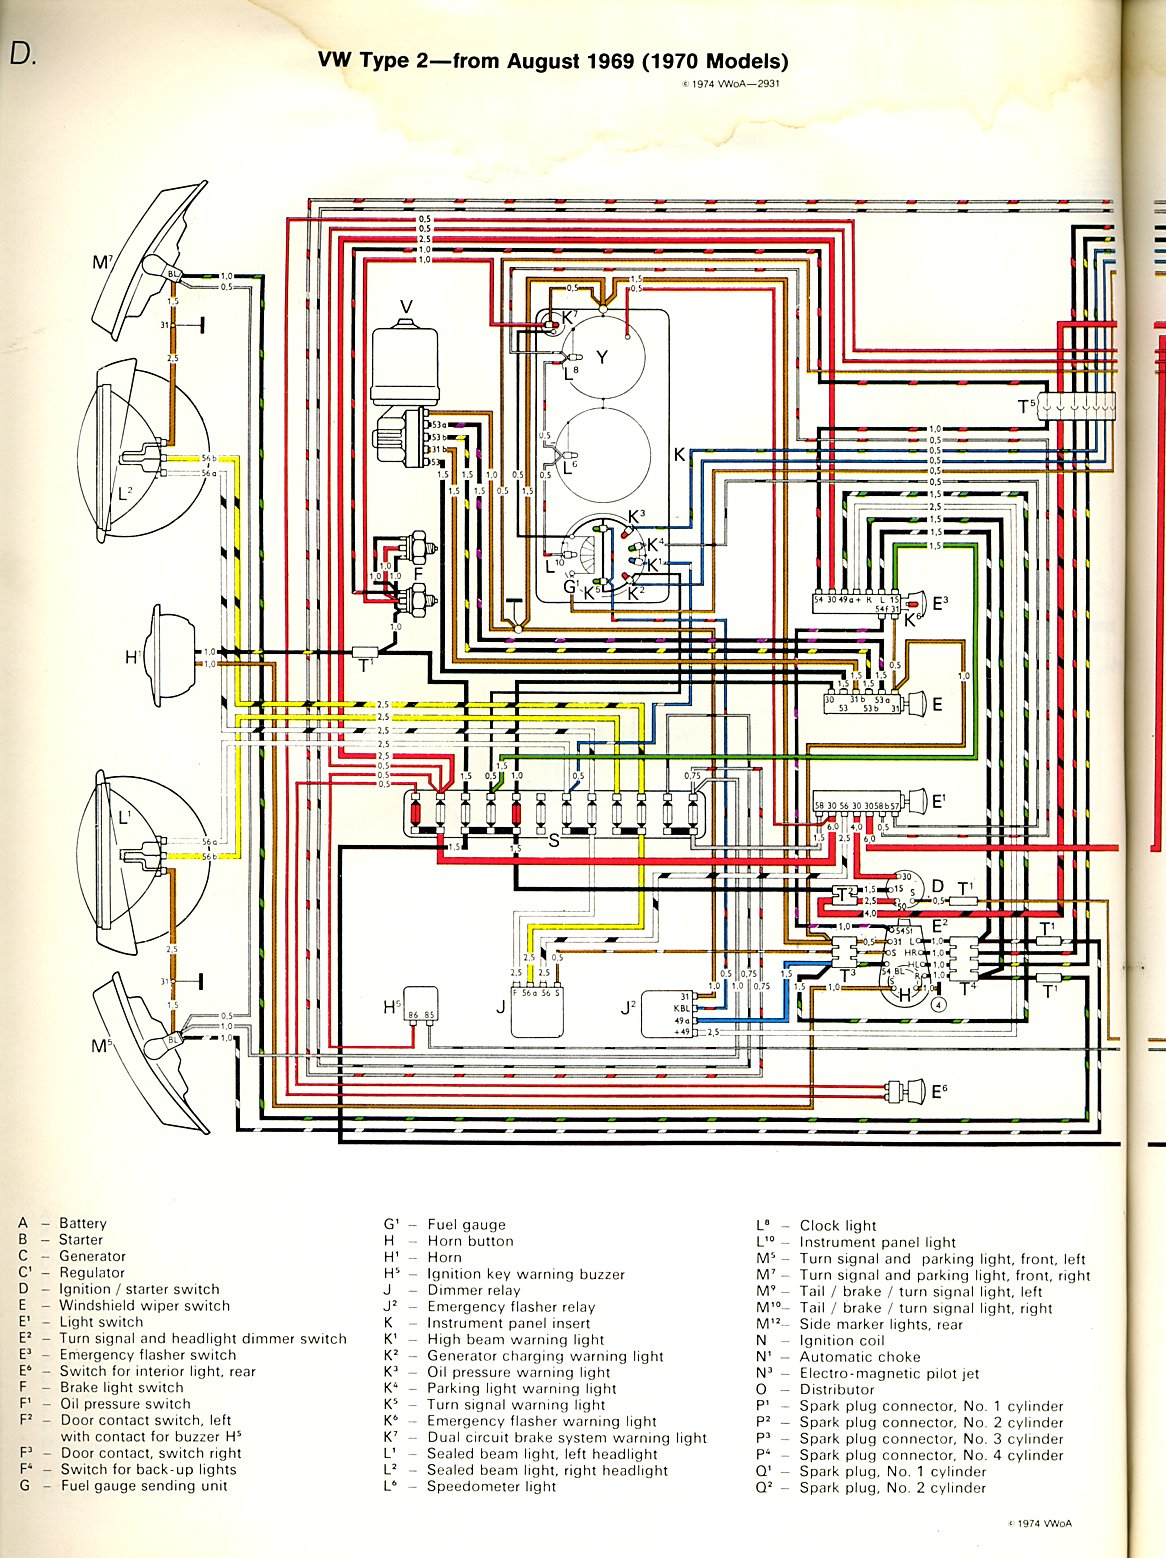 1966 bus wiring diagram usa thegoldenbugcom wire center \u2022 1973 vw wiring diagram 1954 bus wiring diagram thegoldenbugcom wire center u2022 rh grooveguard co